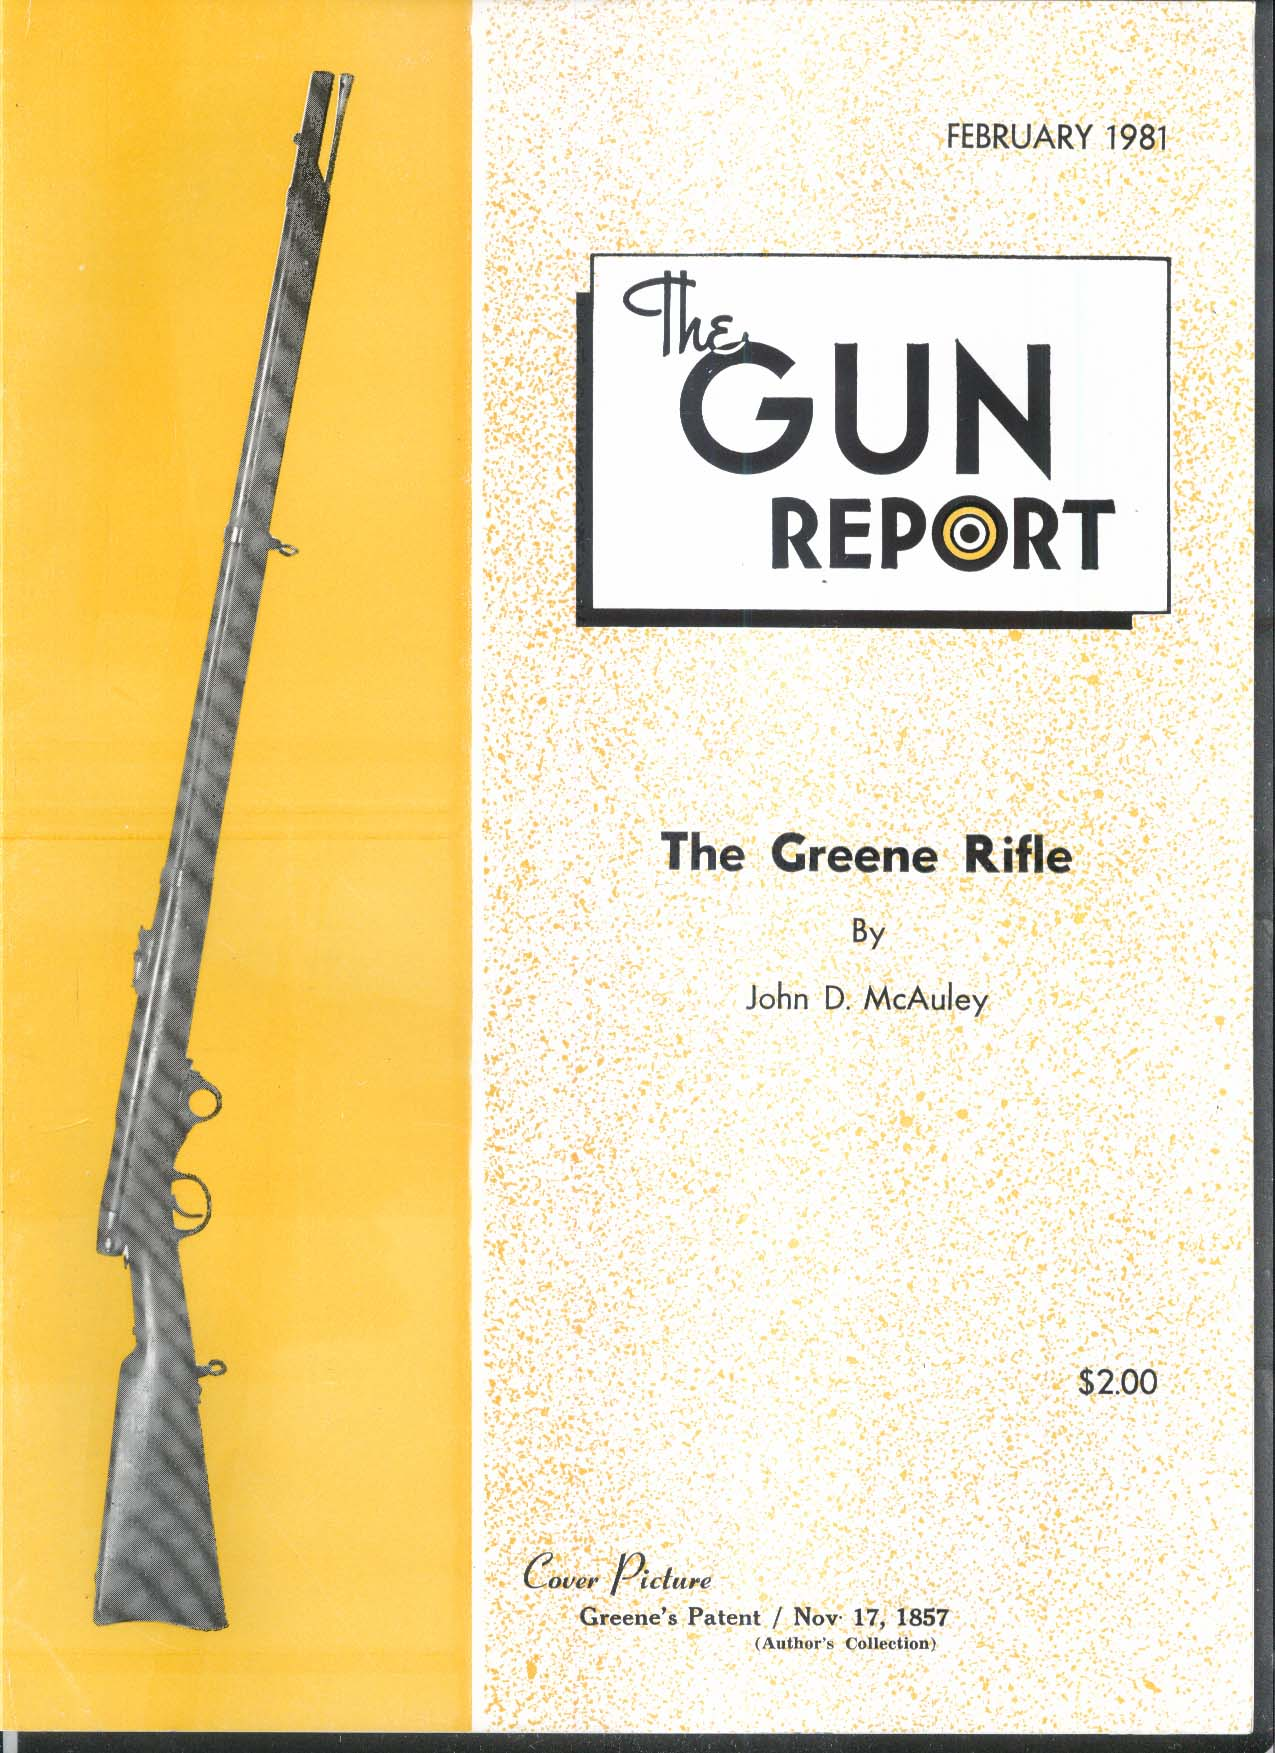 GUN REPORT Greene Rifle Peter Gonter + 2 1981